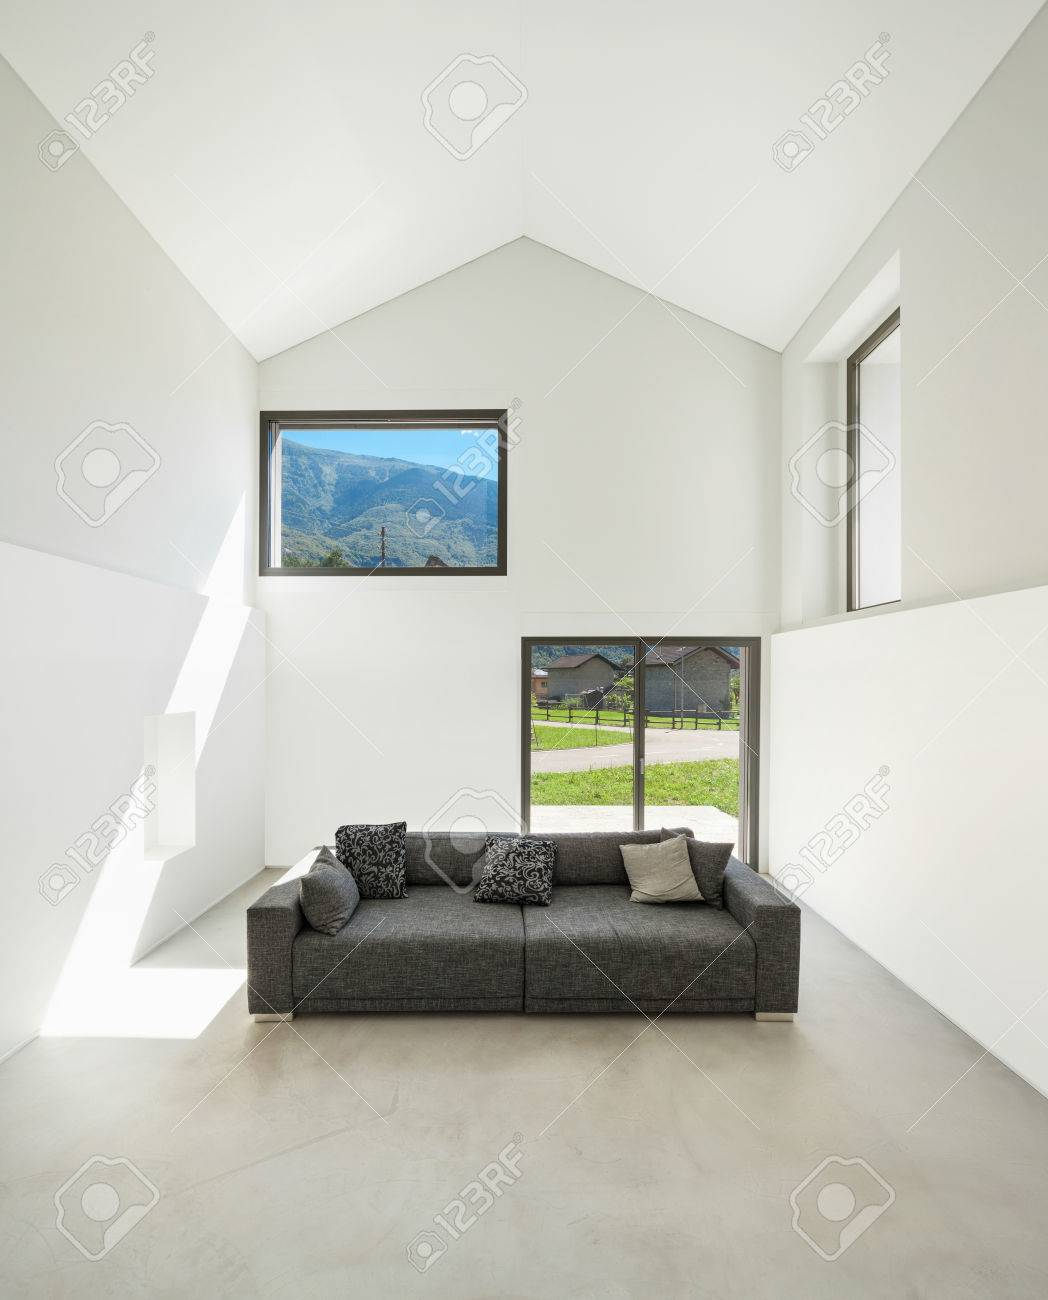 Architecture, Interior Modern House, Living Room With Sofa Stock ...